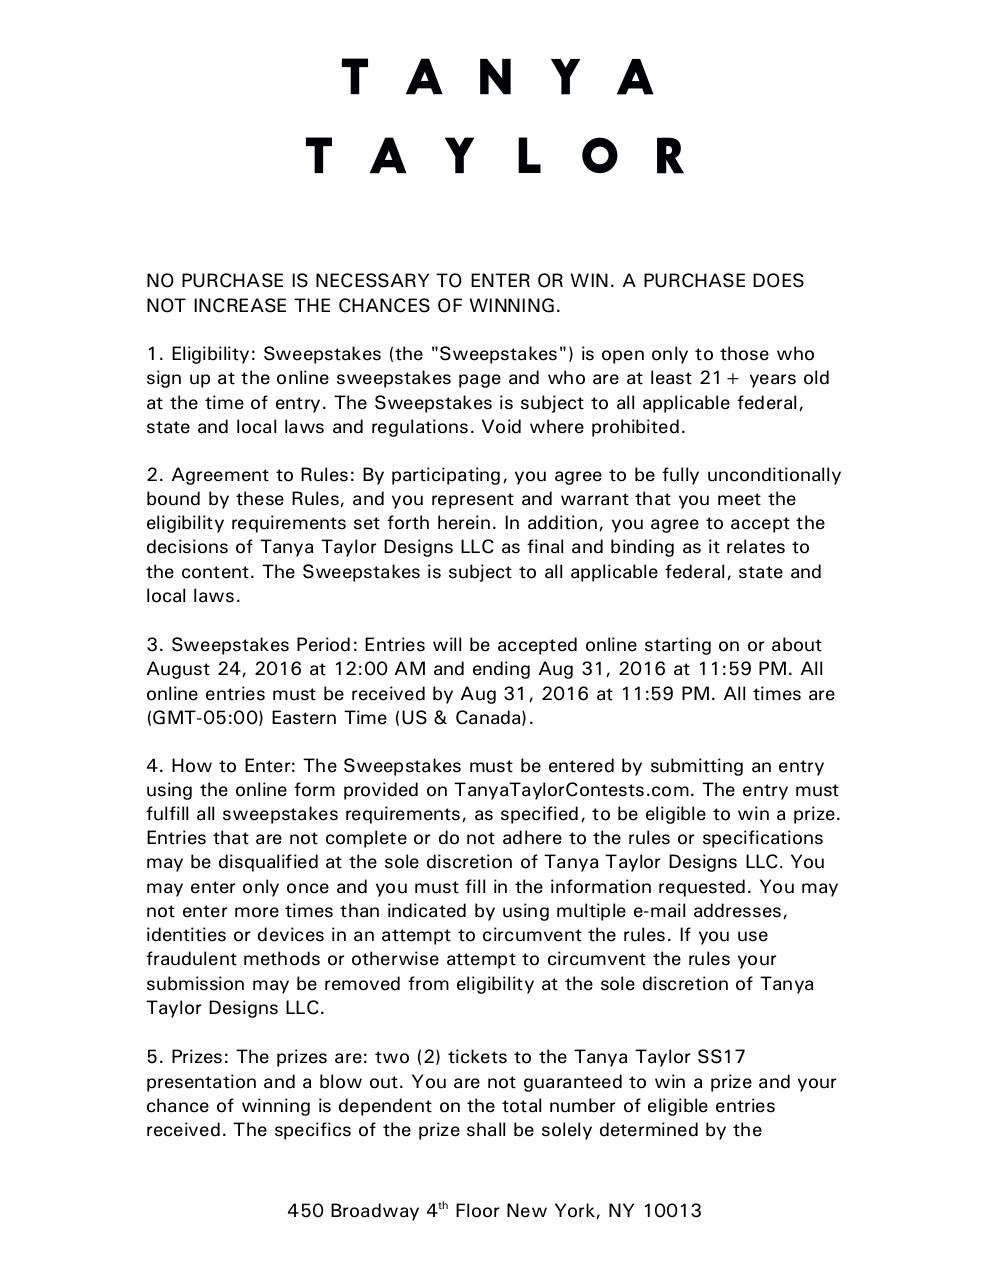 Tanya Taylor Fashion Week Sweepstakes Agreement TAR comments.pdf - page 2/6